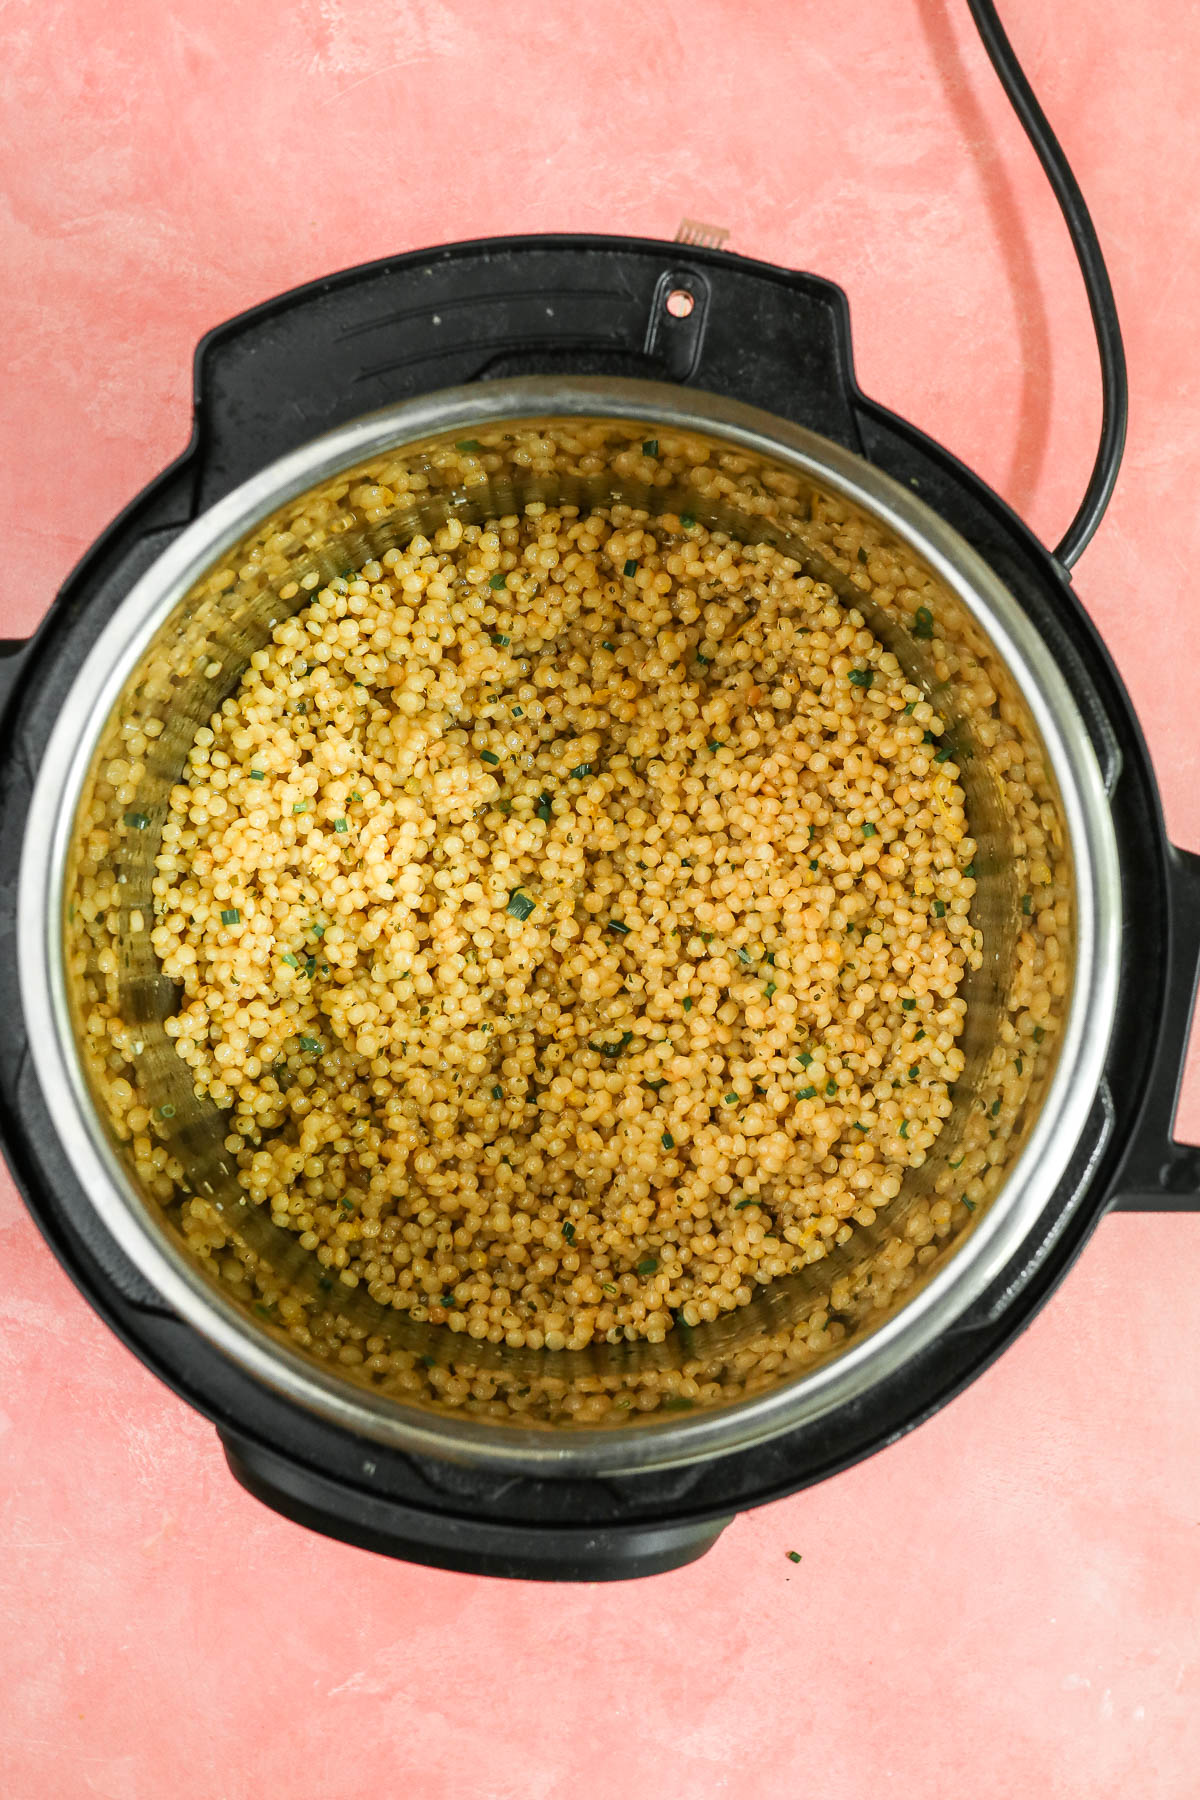 cooked couscous in the instant pot with added ingredients.